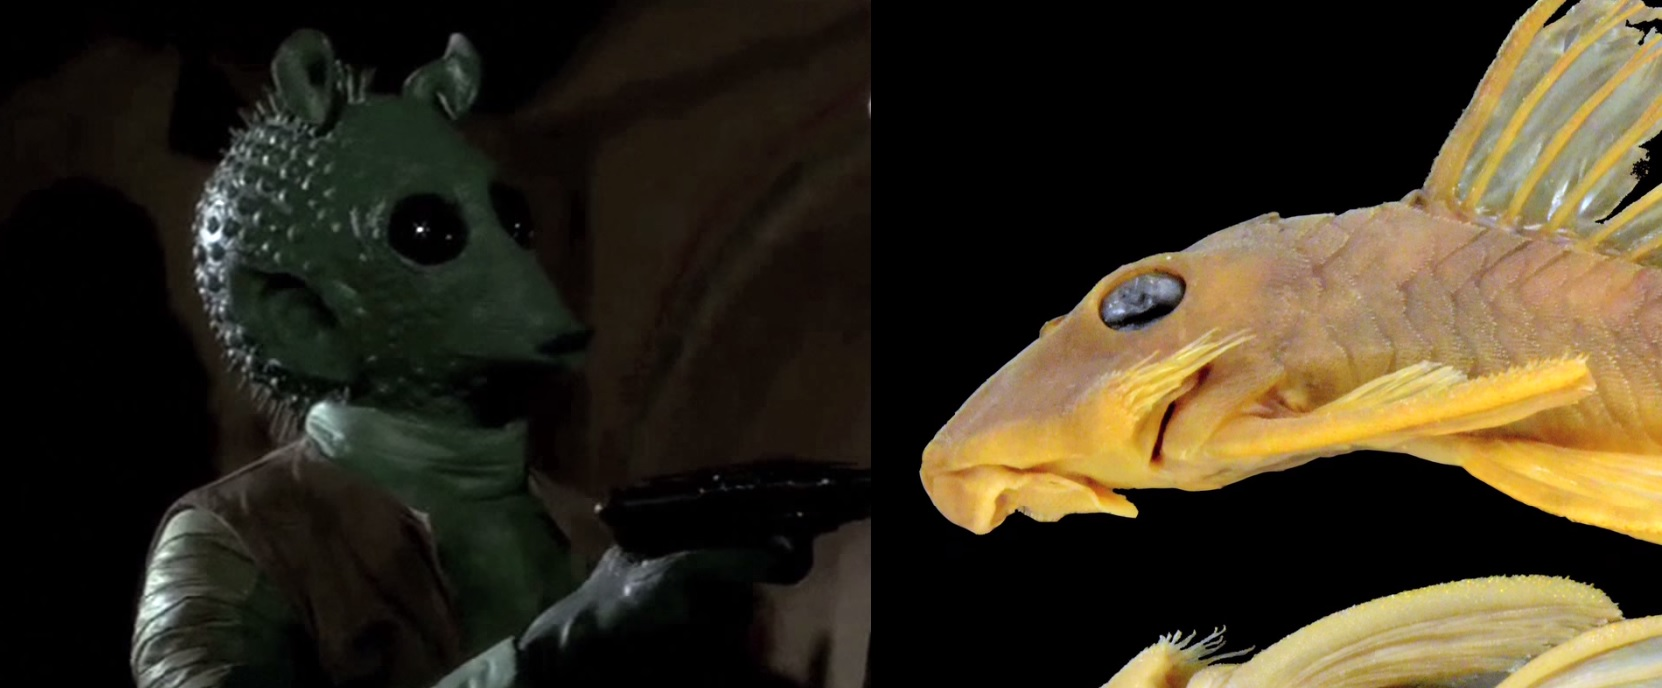 Greedo (left) and the catfish named after the character. Image screenshot of video by Auburn University College of Sciences and Mathematics on YouTube.